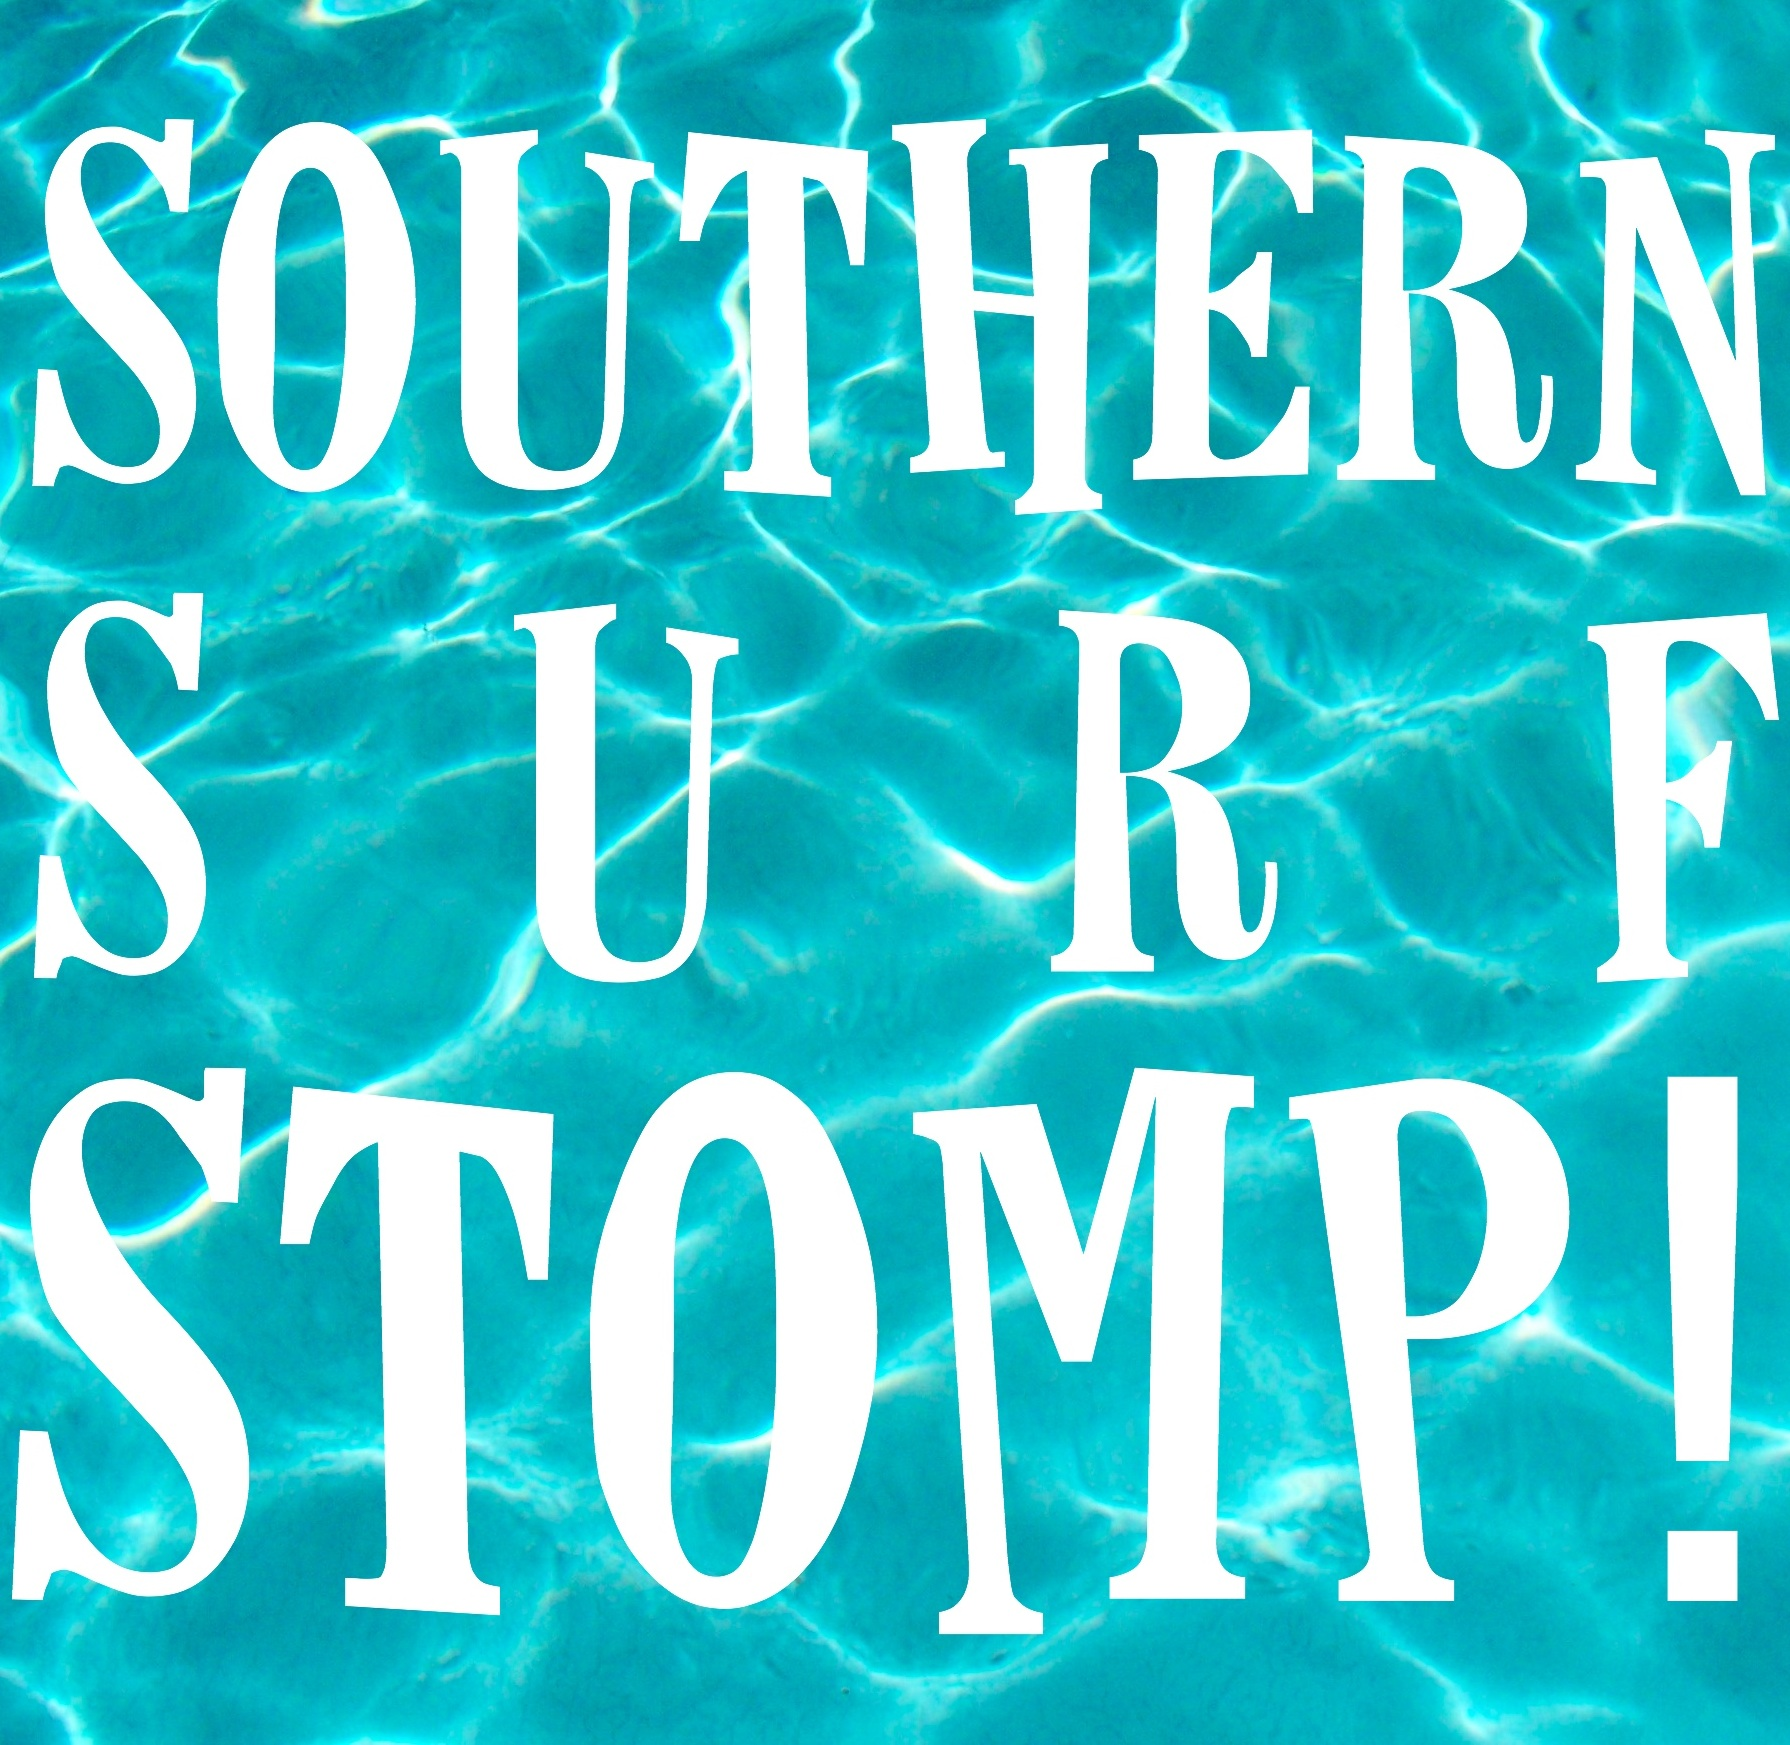 SSS Logo cropped Southern Surf Stomp - SURFROCKRADIO.COM